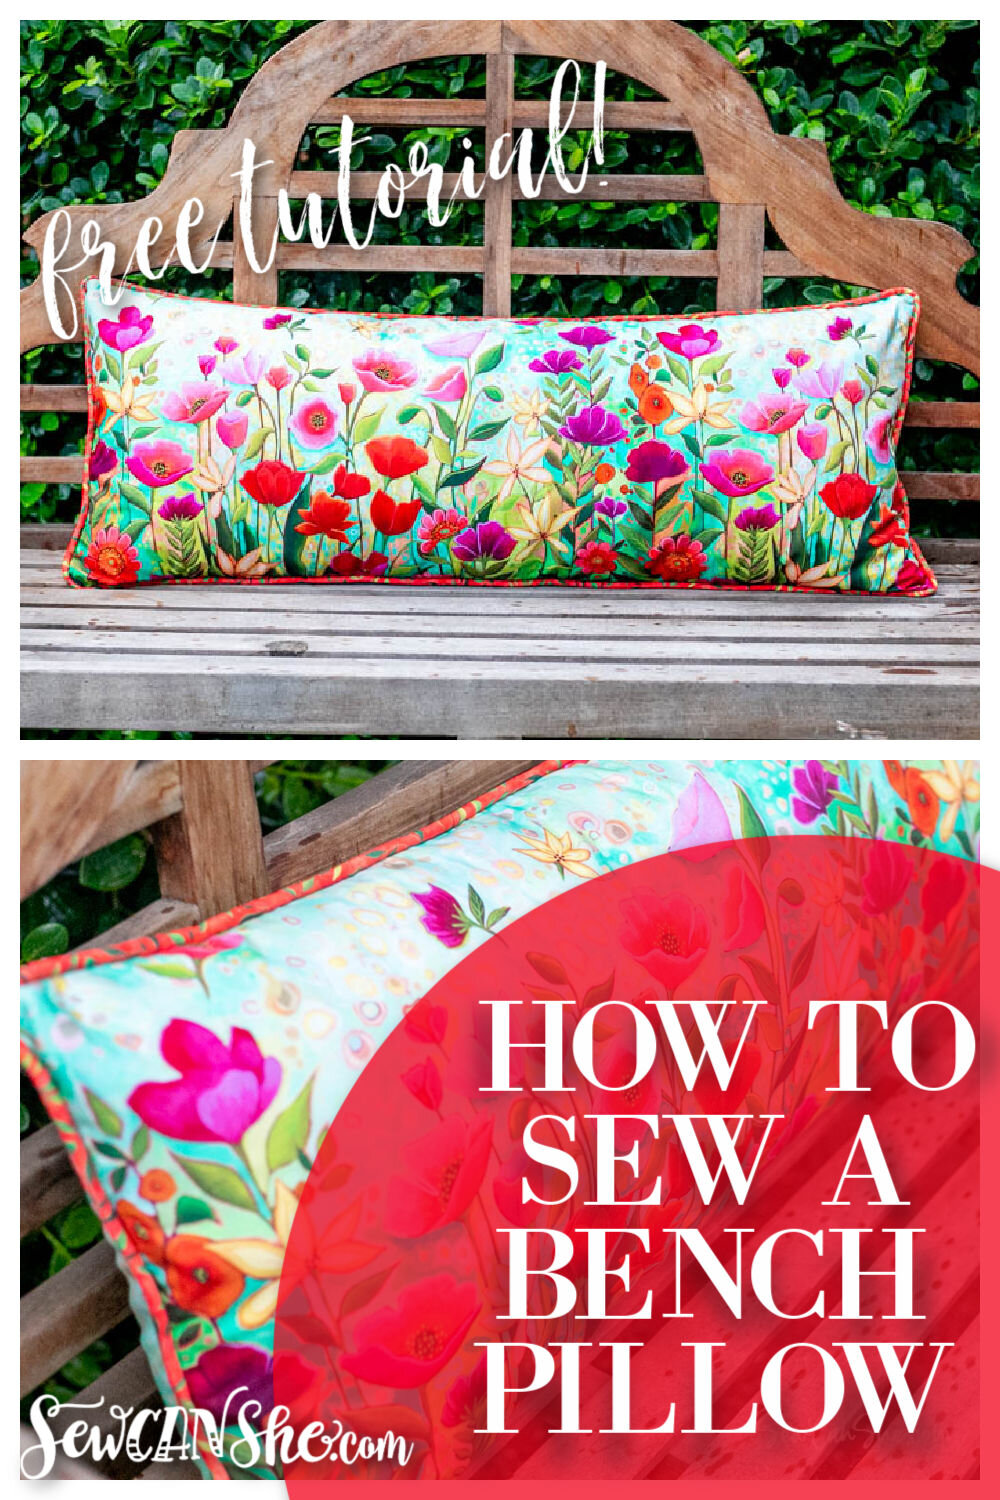 how to sew a bench pillow.jpg